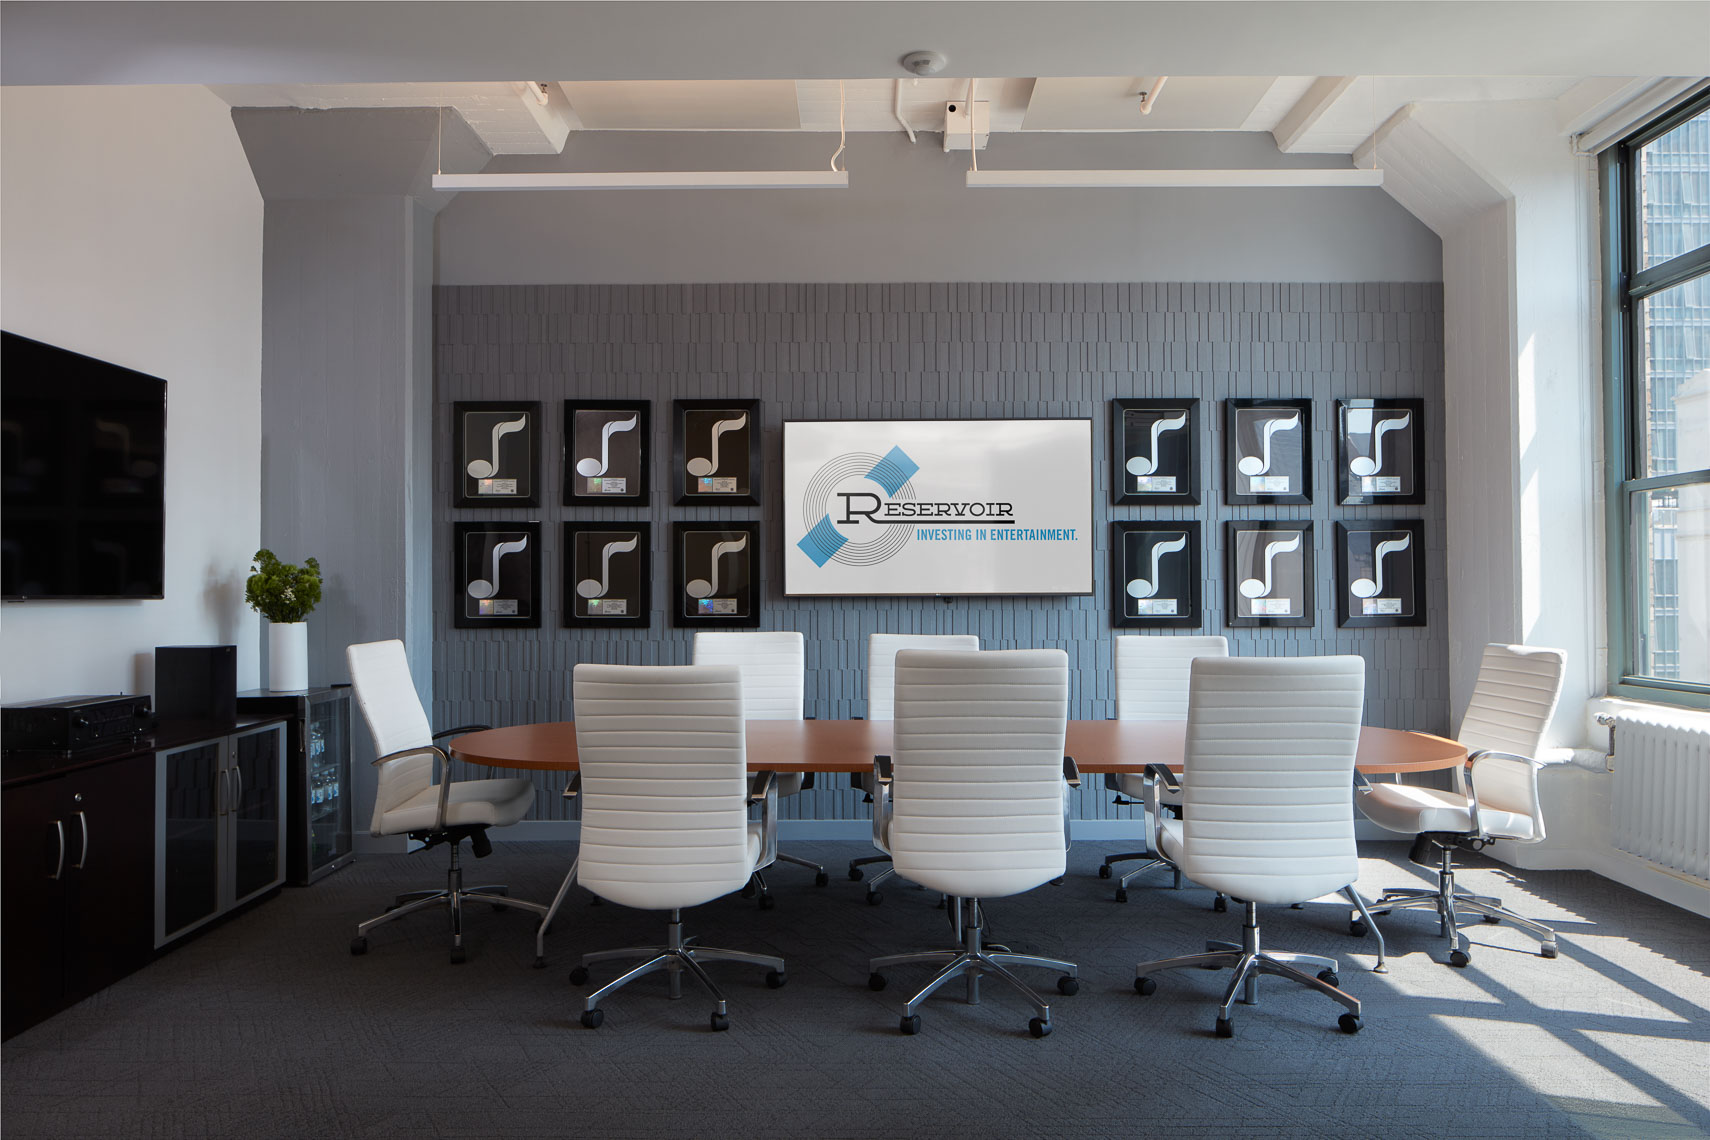 Custom conference room interiors of media offices with plaques on wall